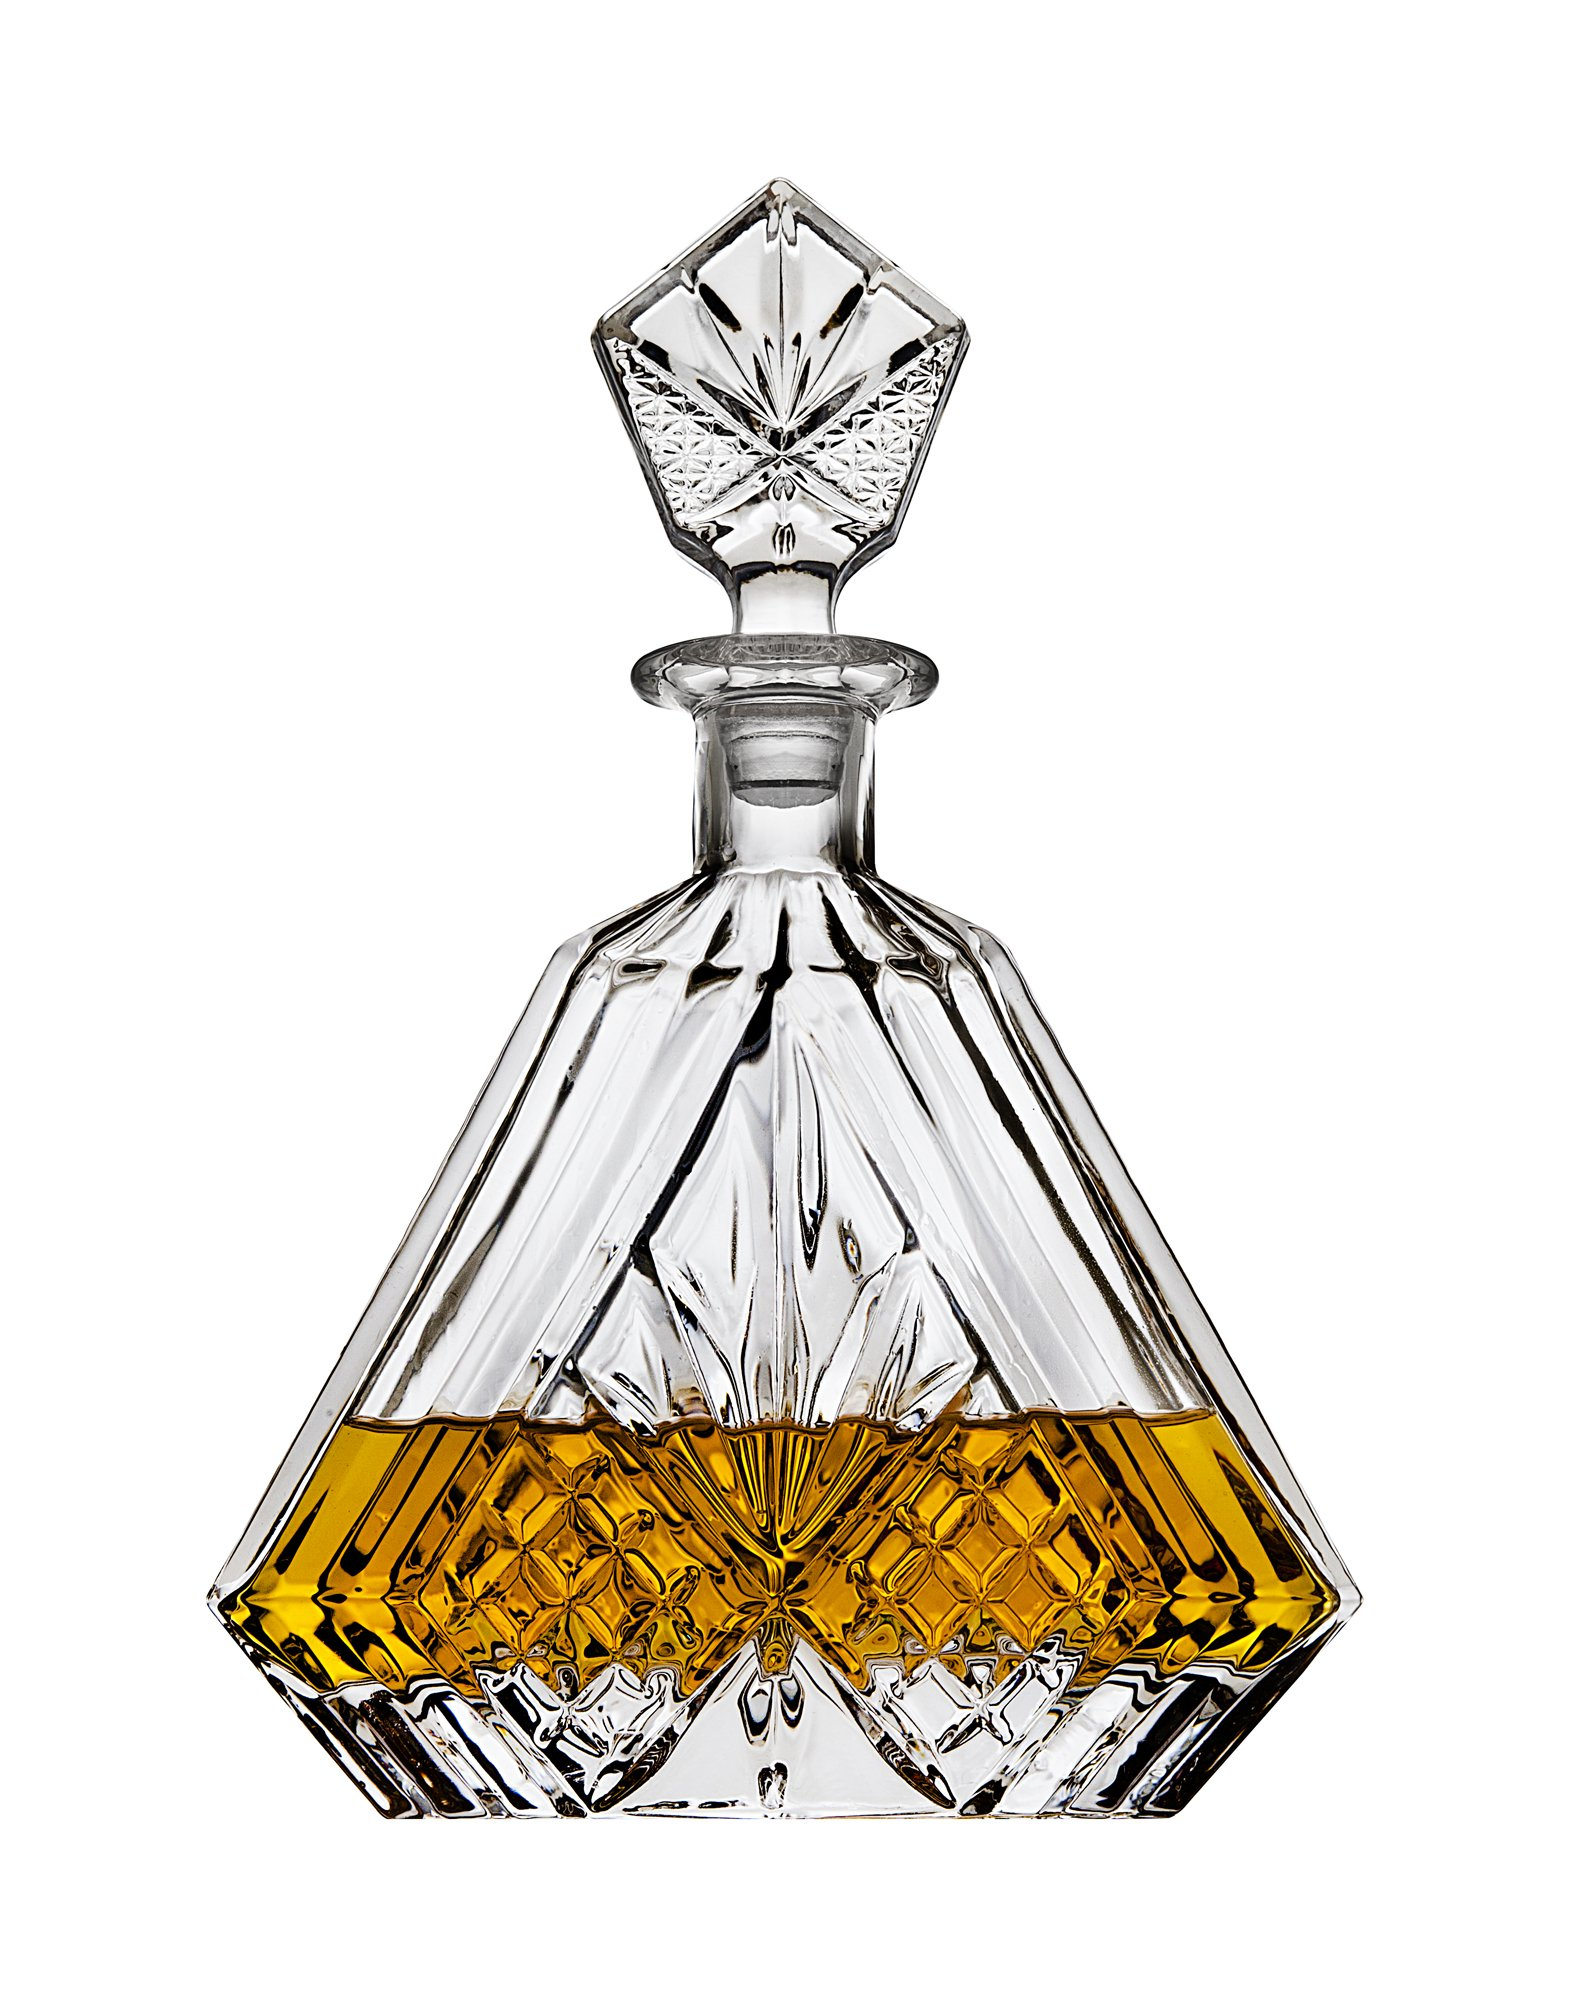 Whiskey Decanter Set with 2 Old Fashioned Whisky Glasses for Liquor Scotch Bourbon or Wine – Irish Cut Triangular